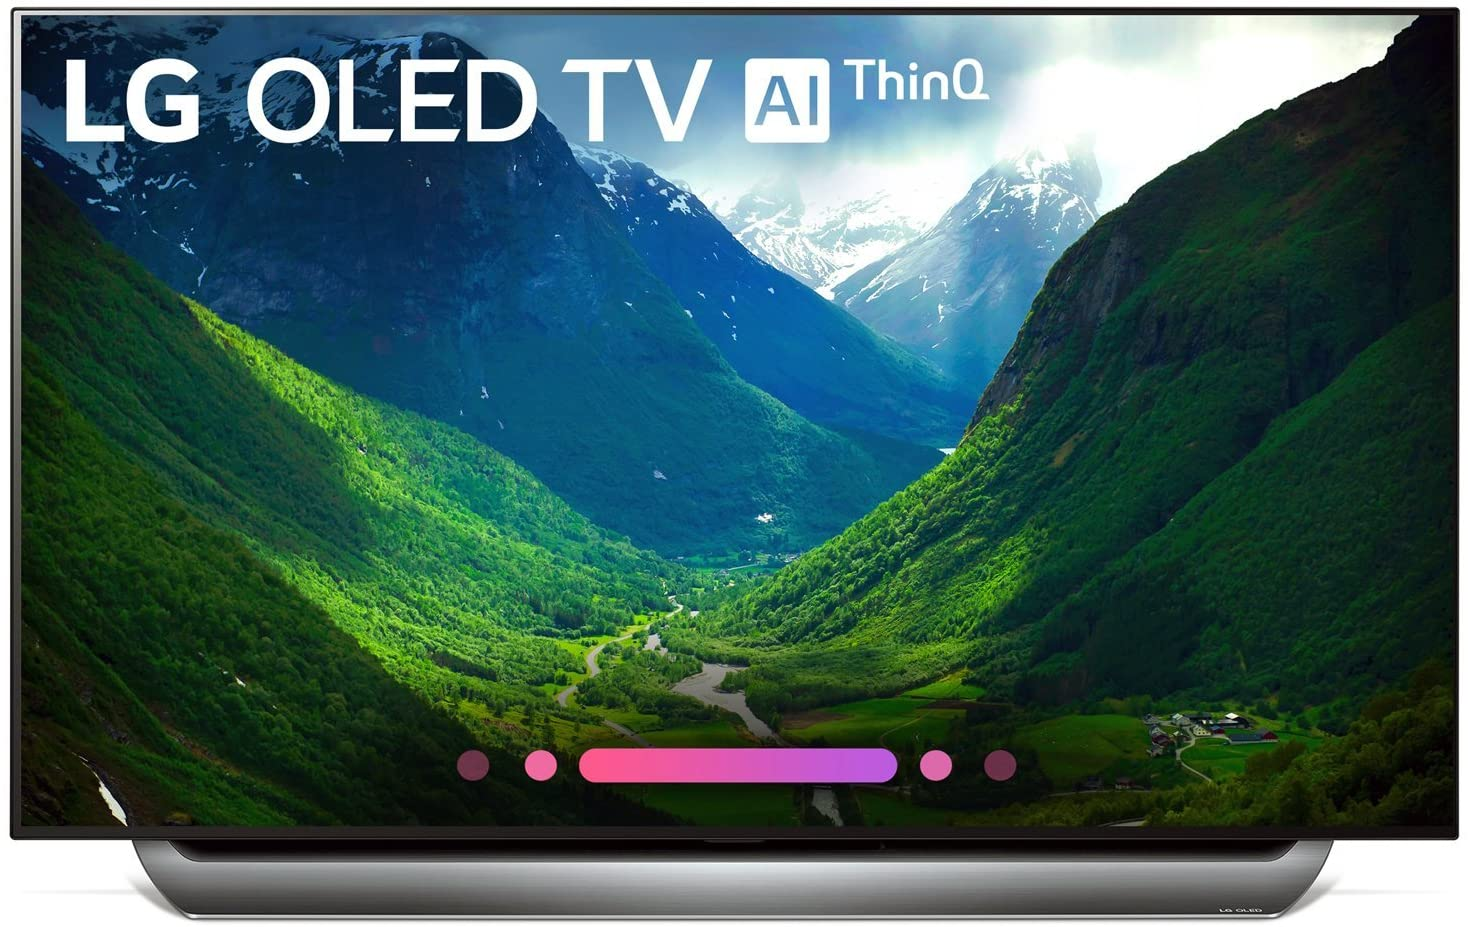 "2018 65"" LG OLED C8 4K UltraHD Smart TV is Now Priced at $1400"